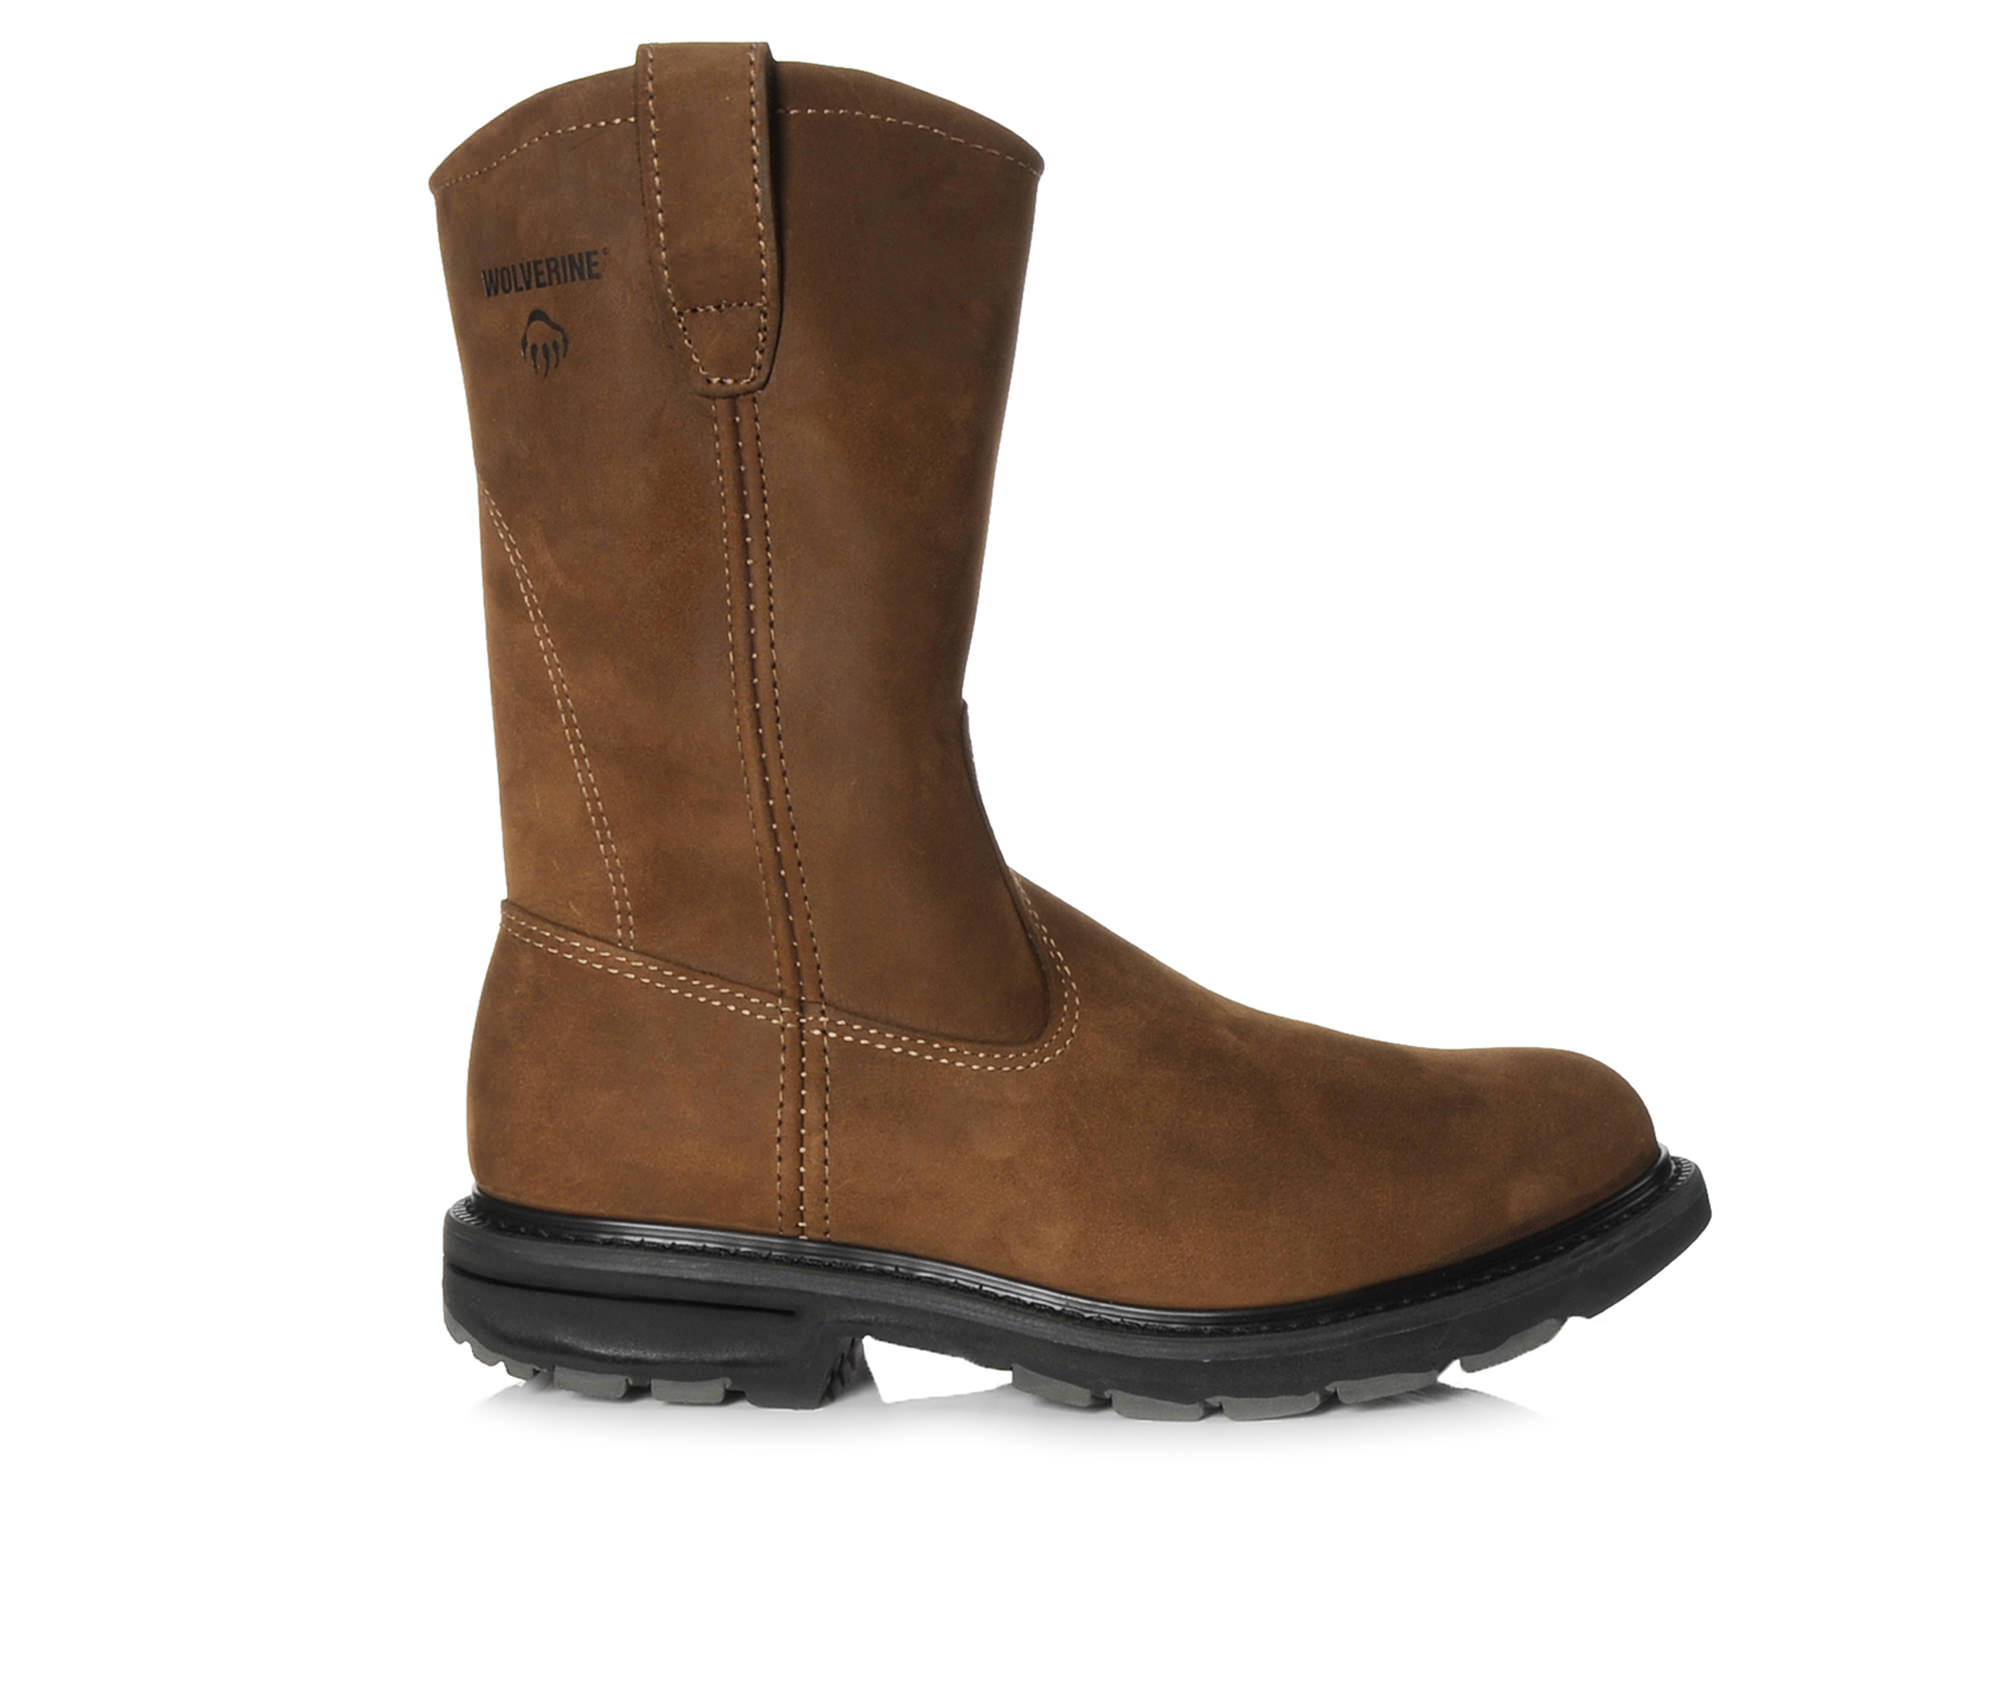 Wolverine Wellington 10 In 4727 Men's Boots (Brown Leather)